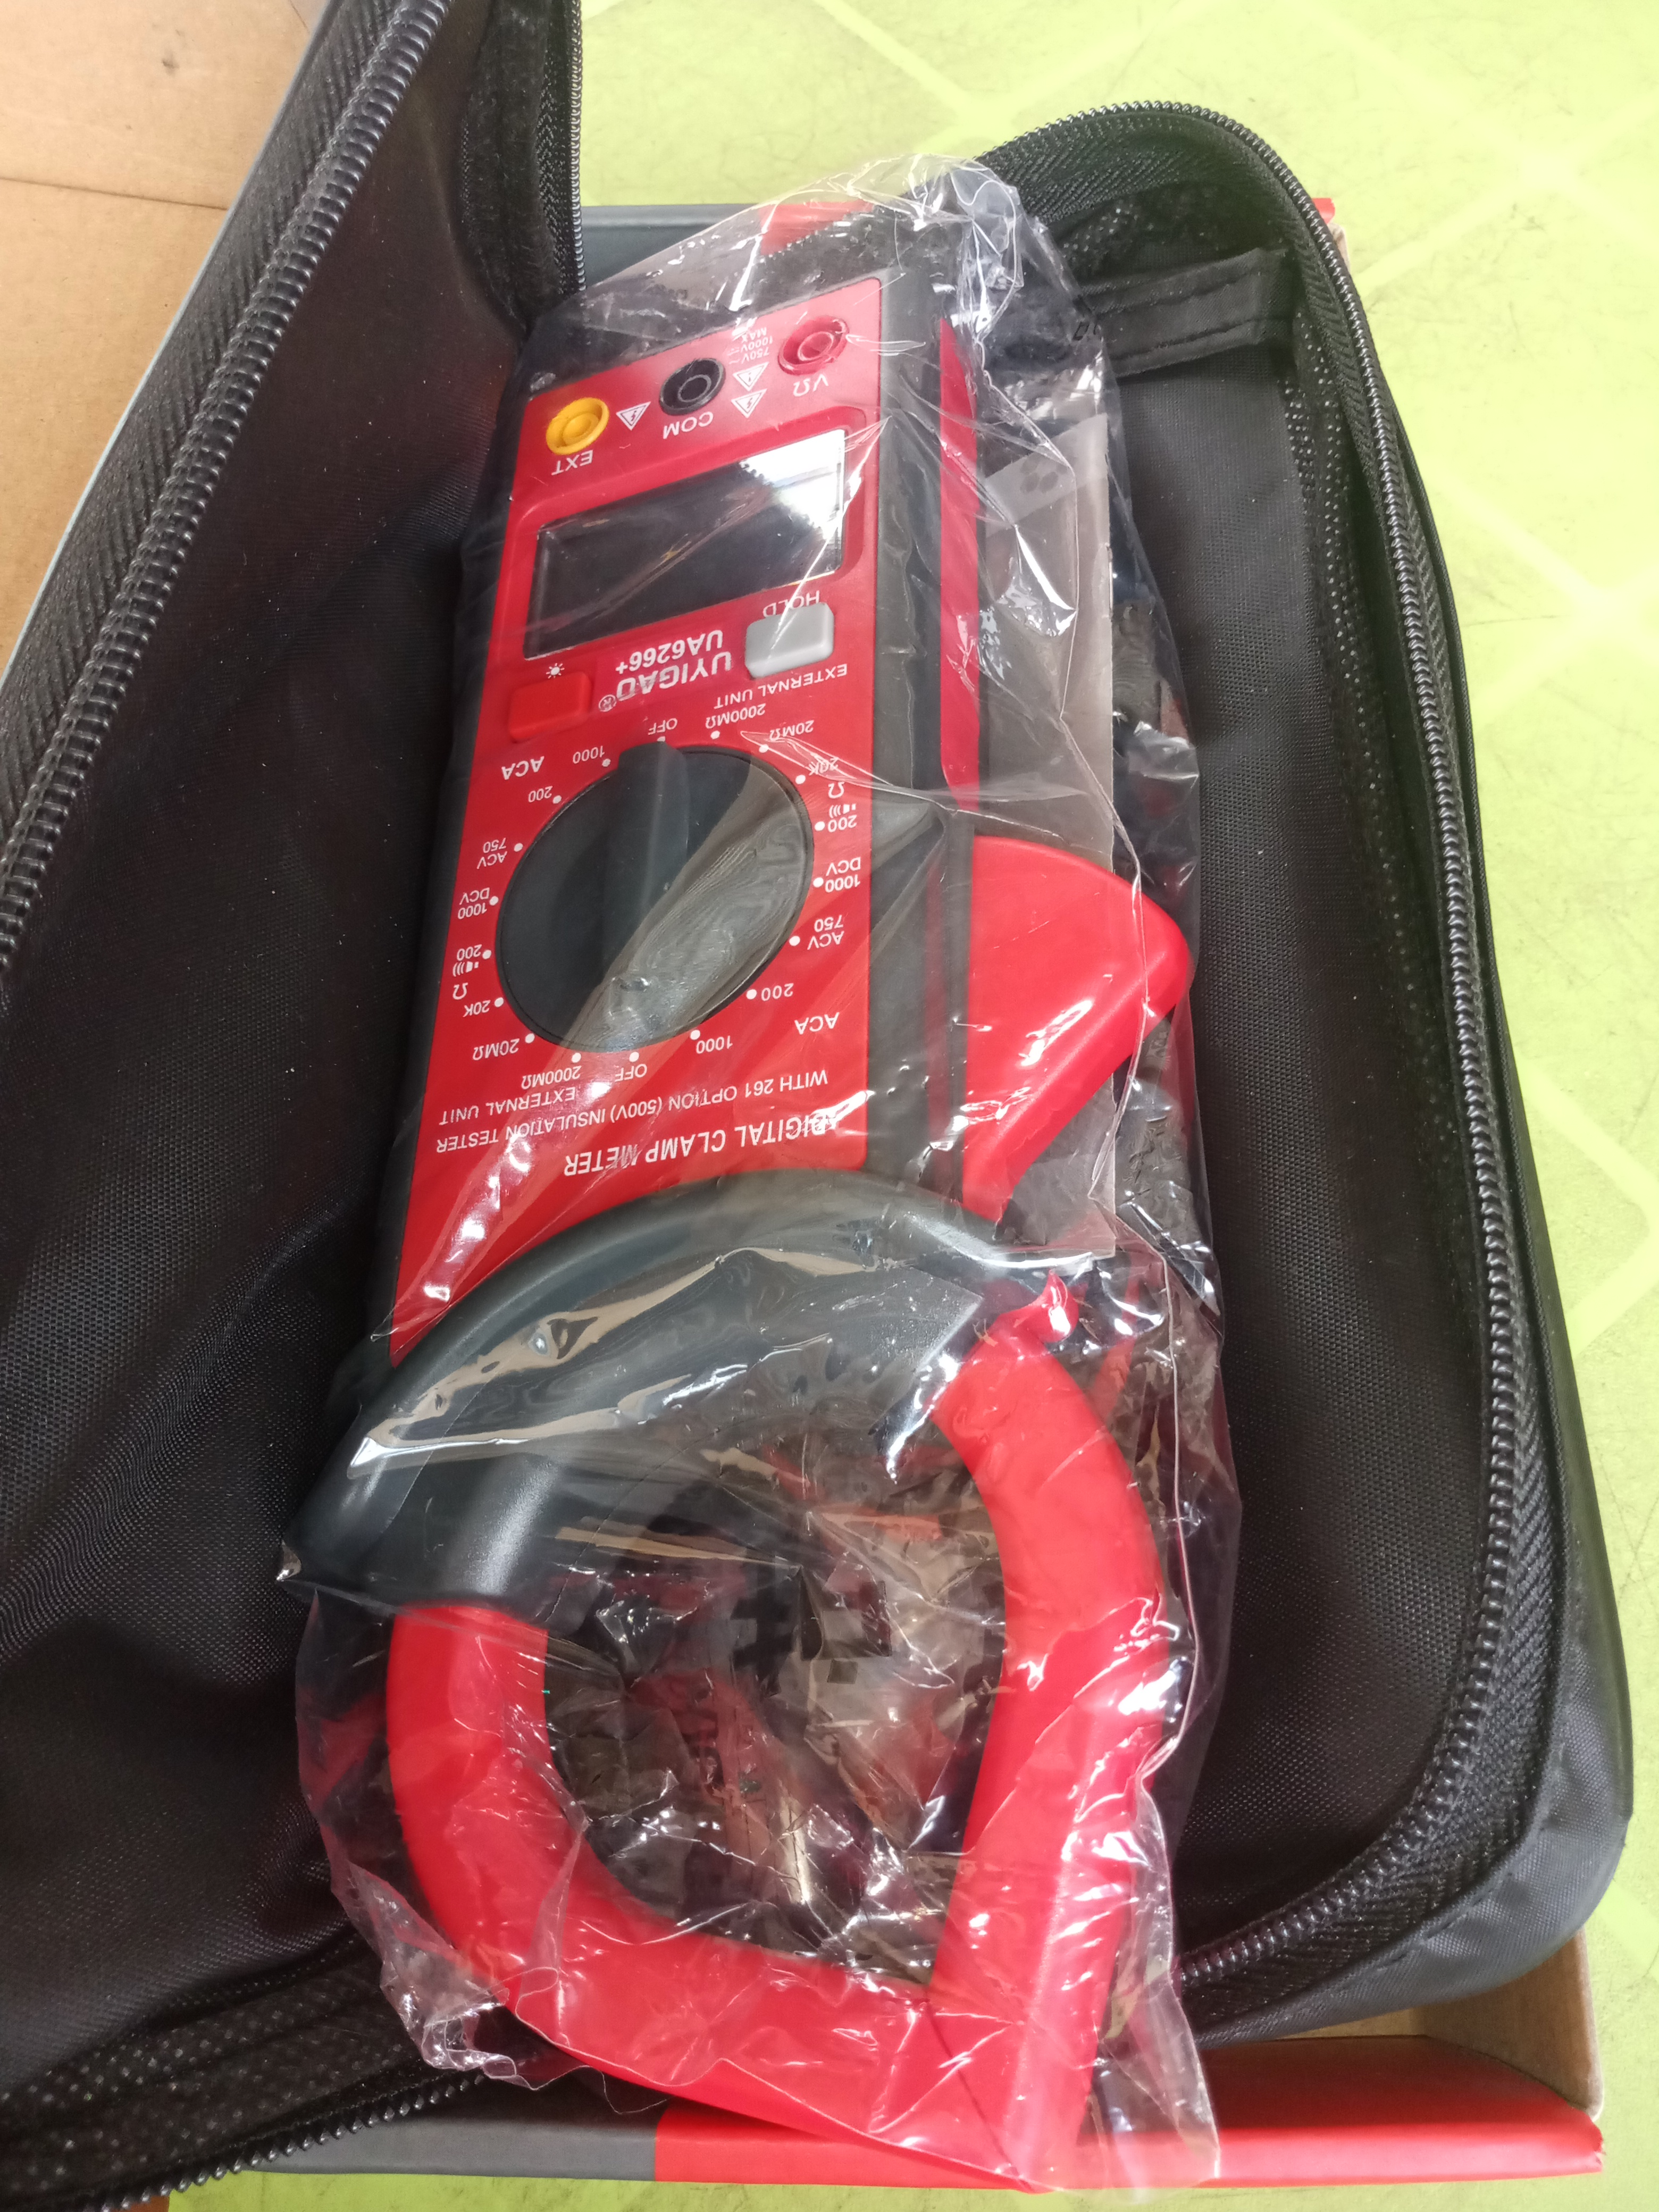 UYIGAO ELECTRICAL CLAMP METRE